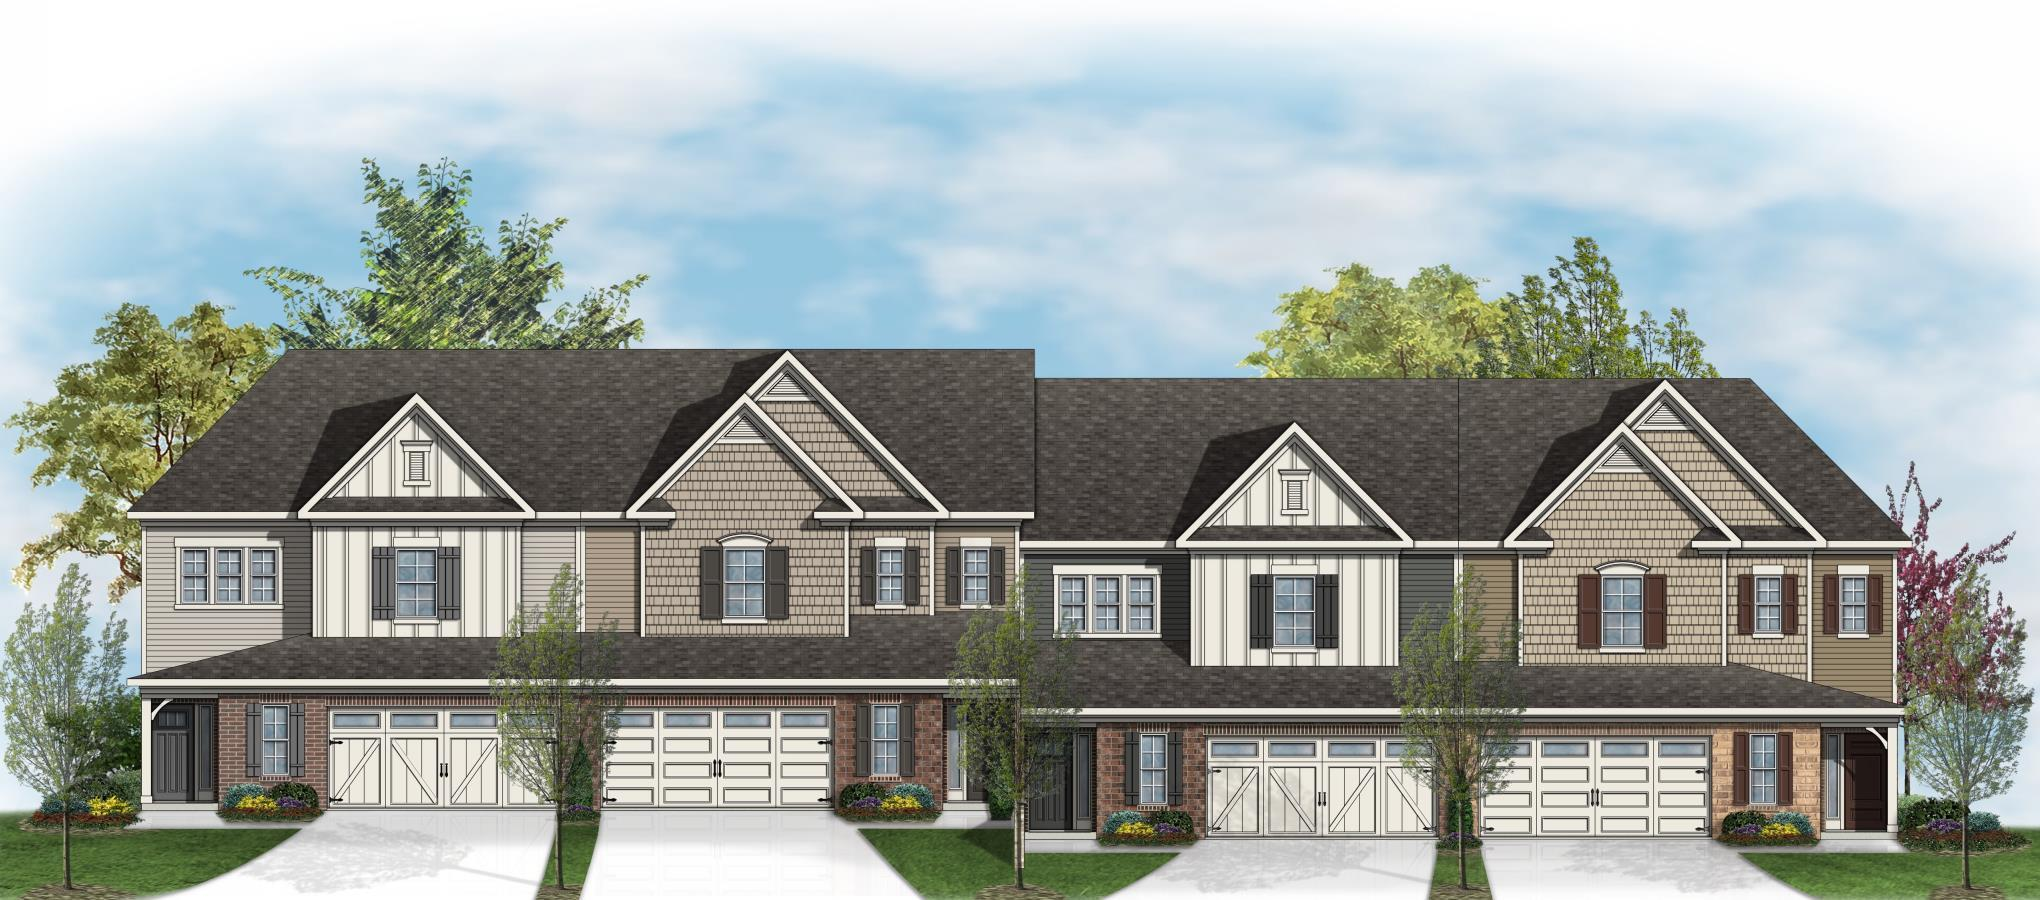 Preserve at white oak luxury townhome collection new homes for Luxury townhome plans